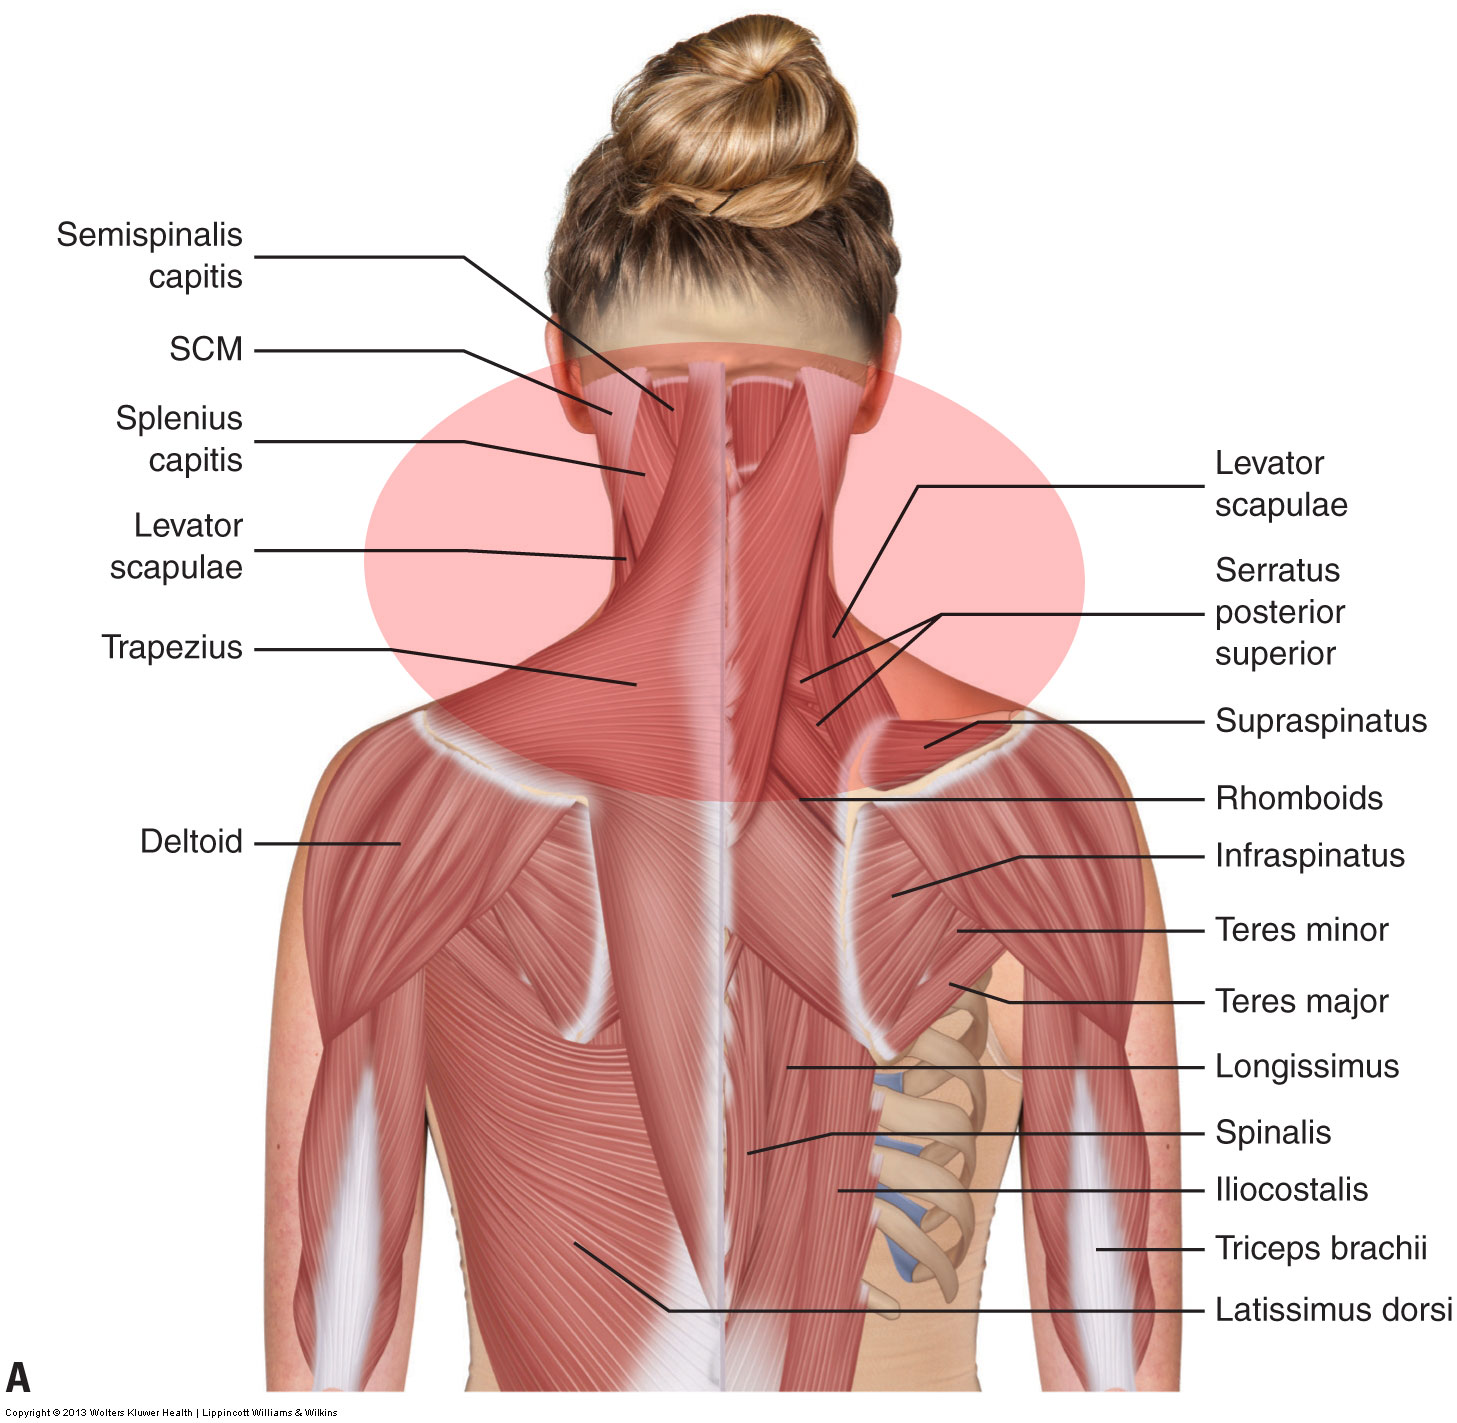 What are the causes of muscle spasming in the neck?